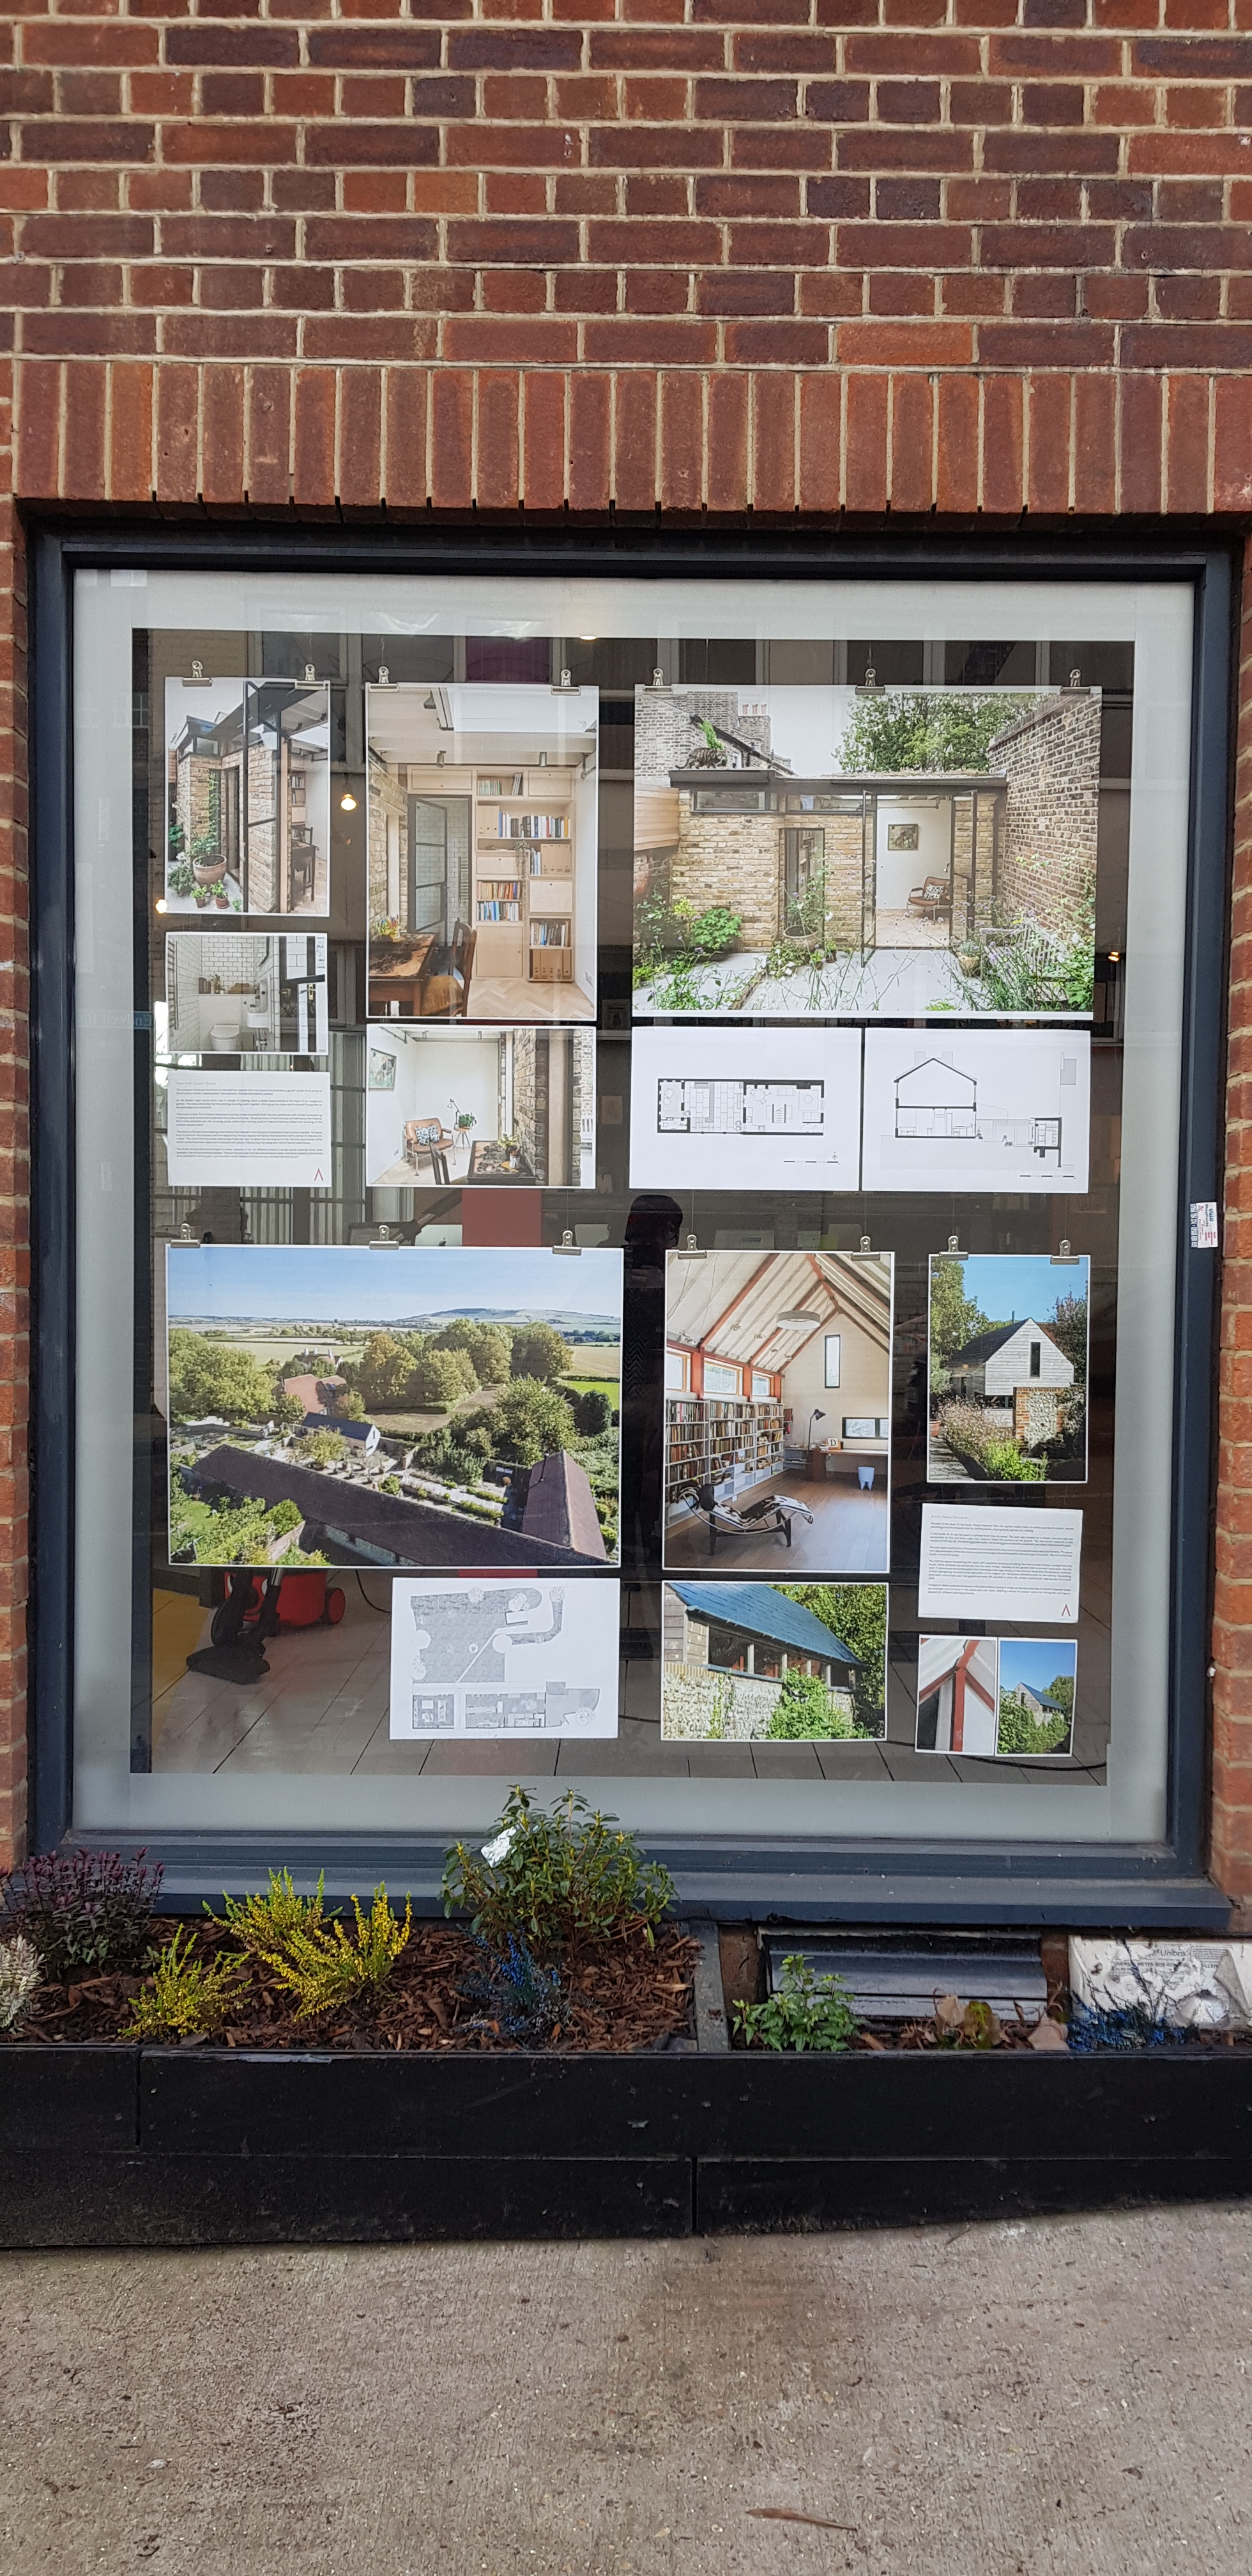 January 'Shop Window' Buildings in Gardens by MWArchitects